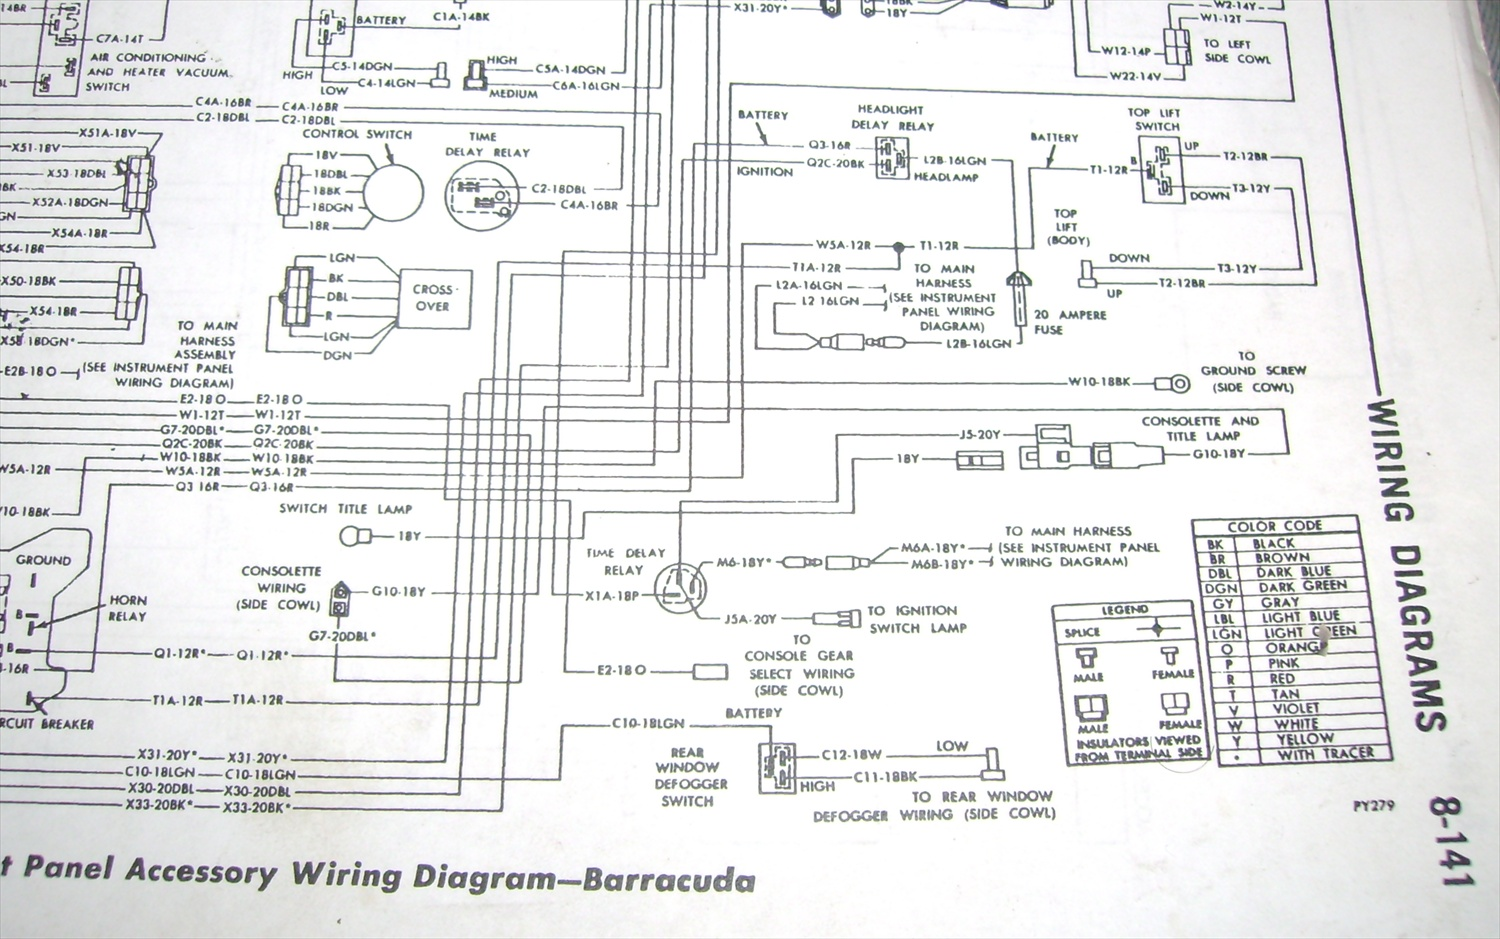 Wiring Diagram Ebody Light Switch 33 Images 1951 Plymouth 4891209 Maplightdiagram001 Need Photo 70 E Body Backside Of Dash Please Moparts 3 Way